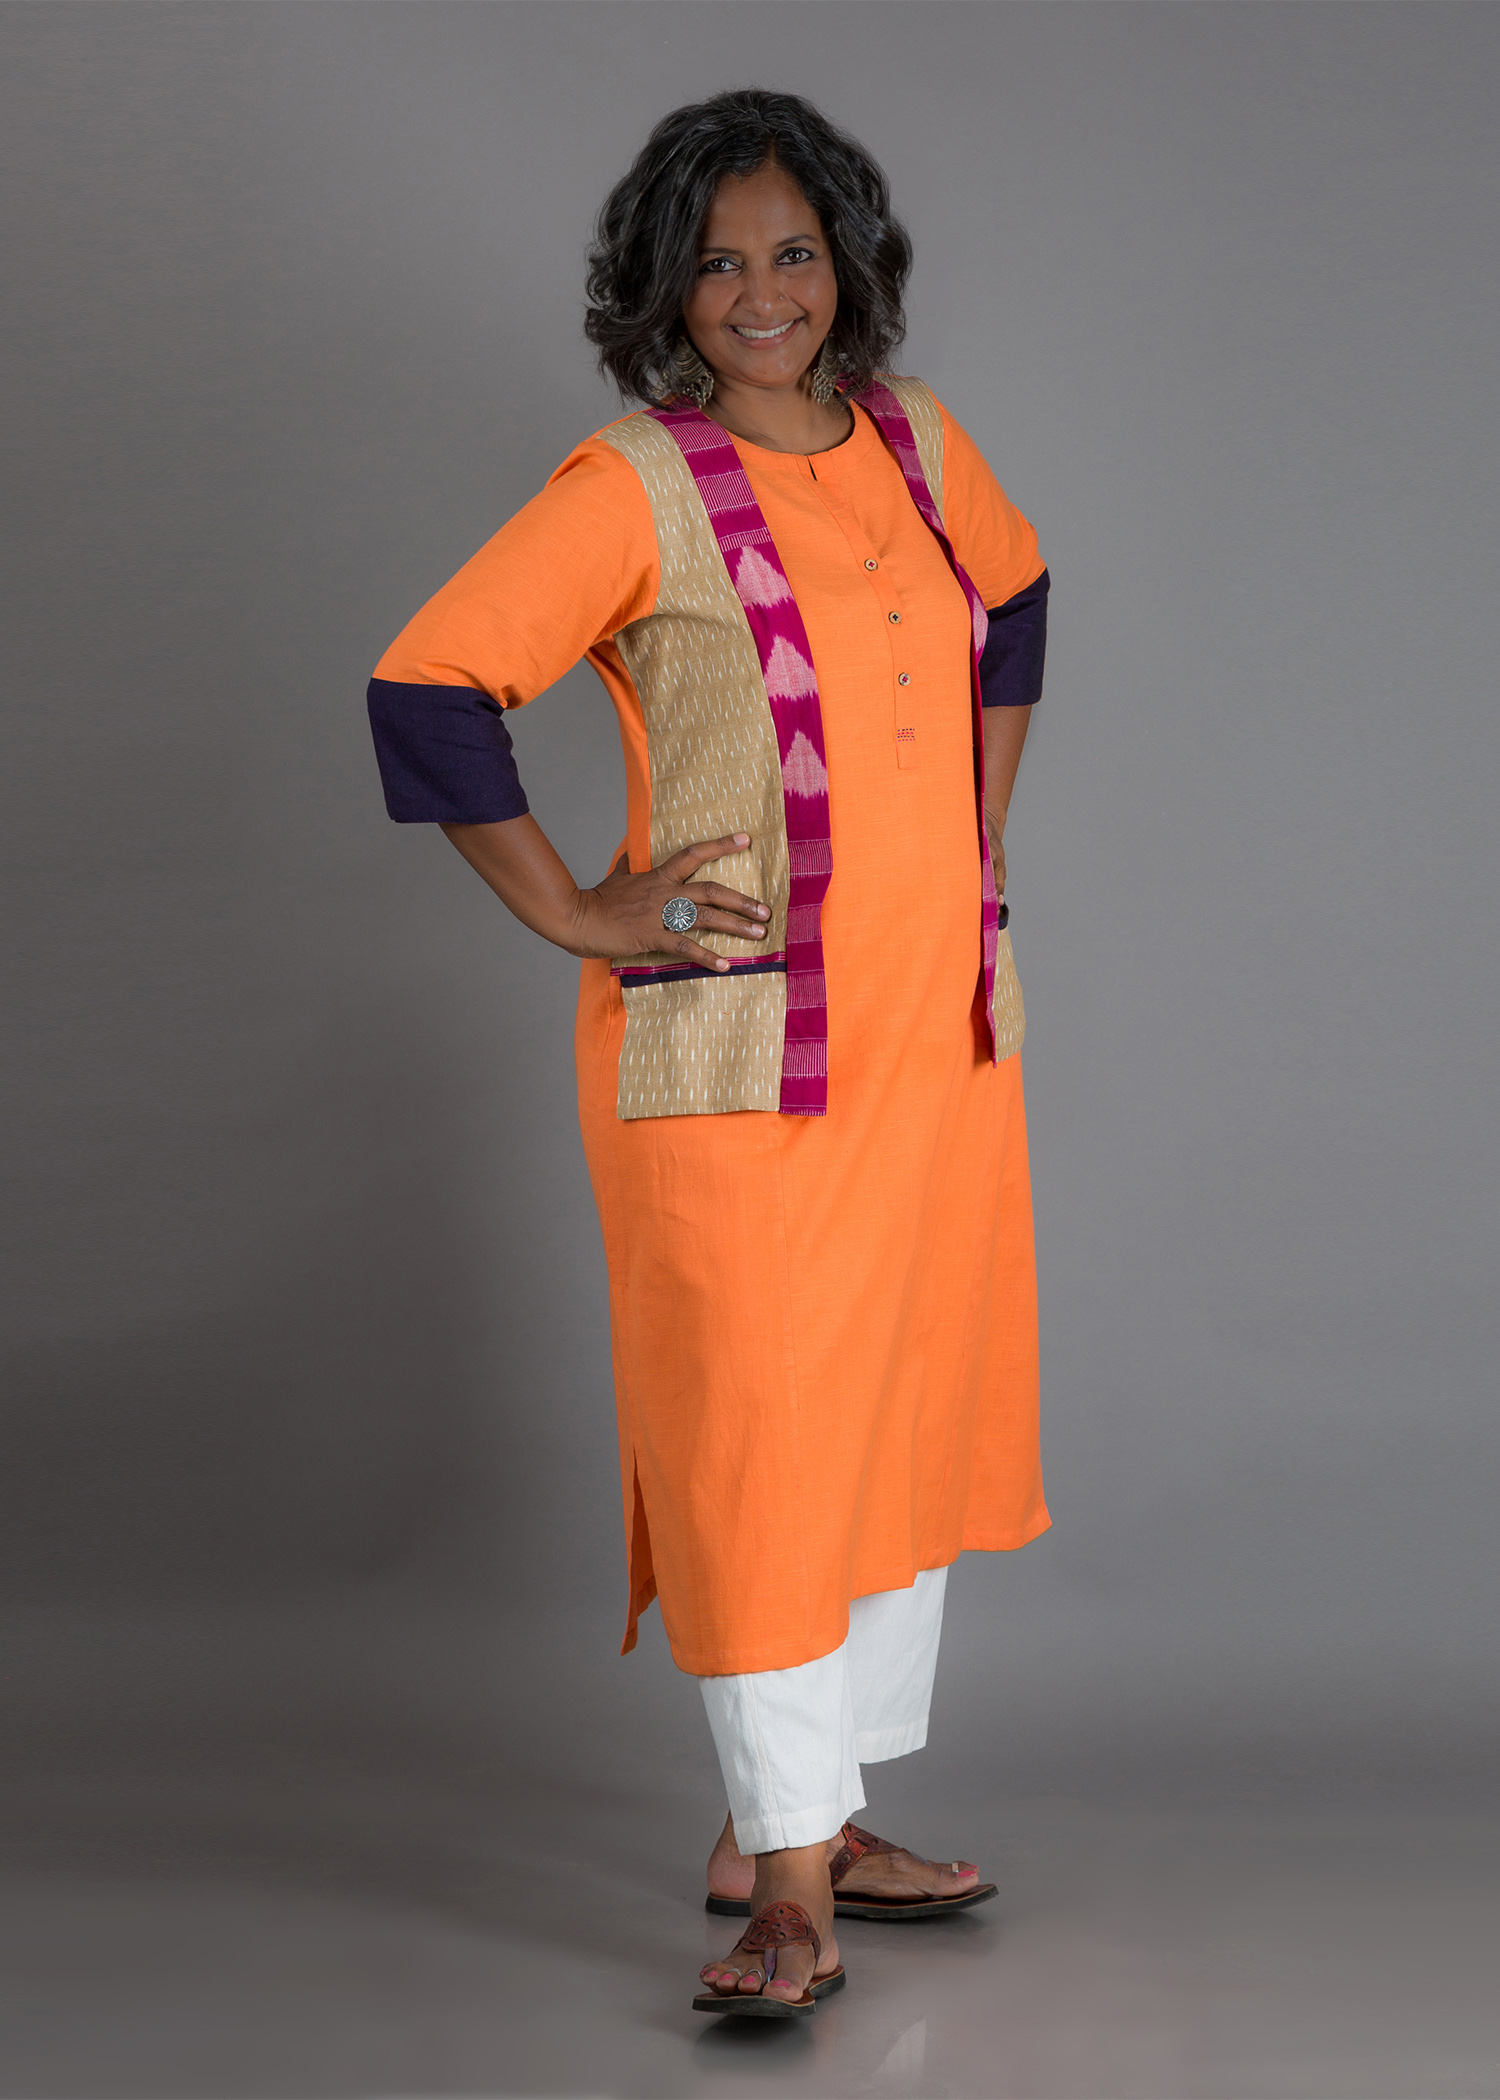 The Tangerine Jacket Kurta